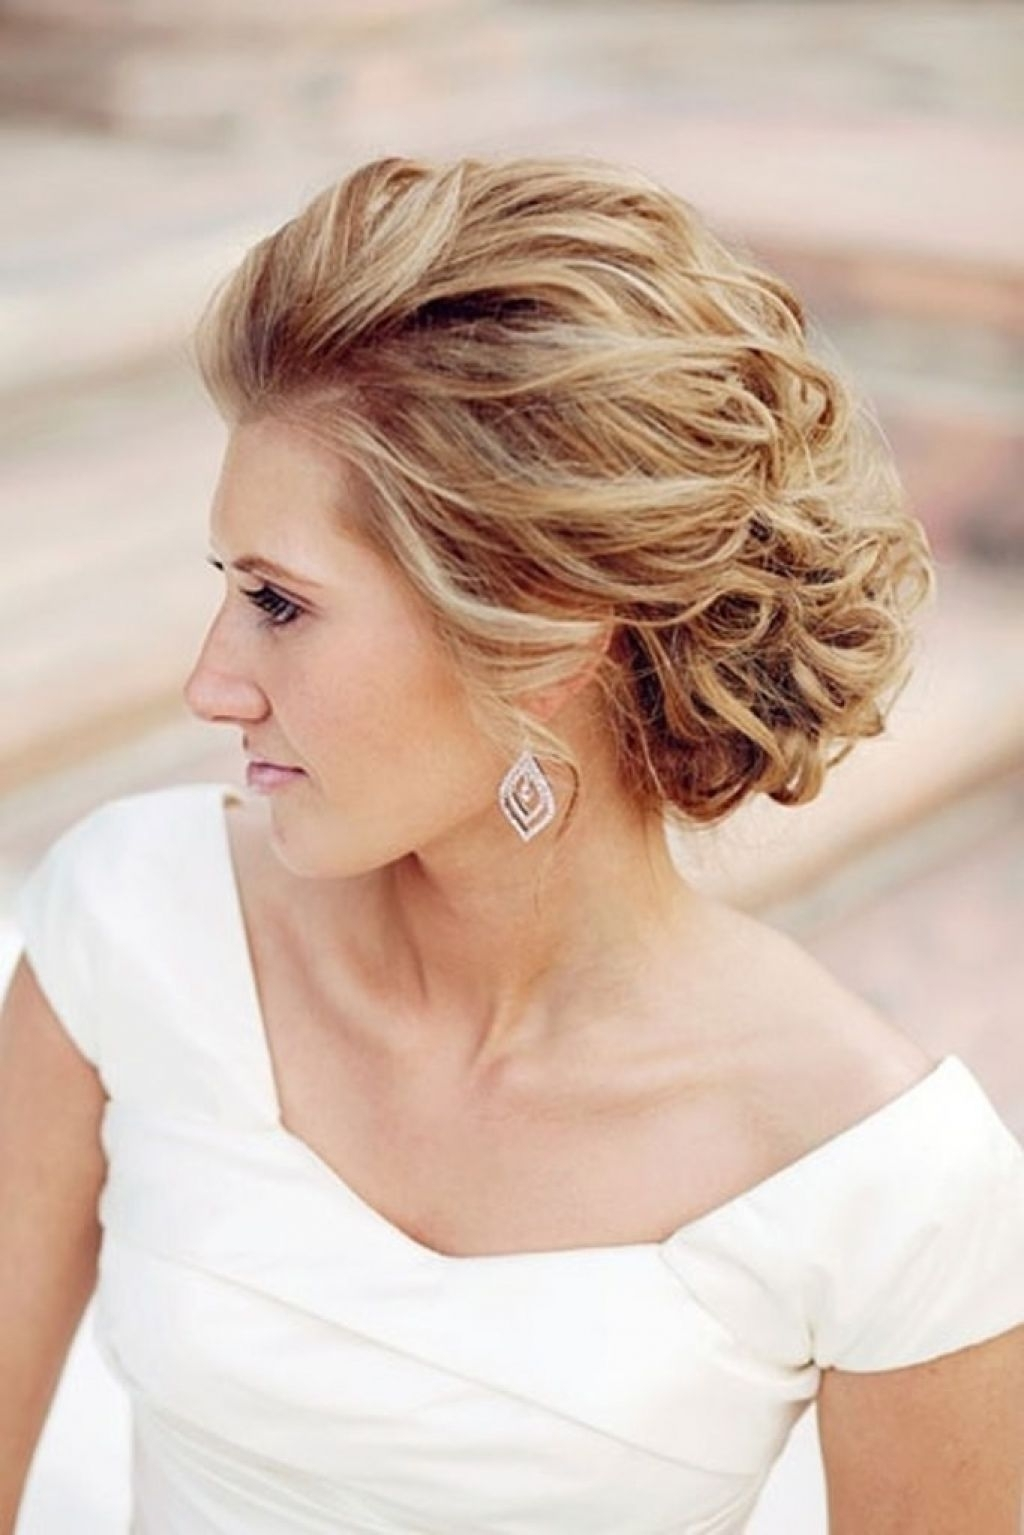 Bridesmaid Hairstyles For Medium Length Hair Wedding Design Ideas With Well Known Wedding Hairstyles For Chin Length Hair (View 8 of 15)